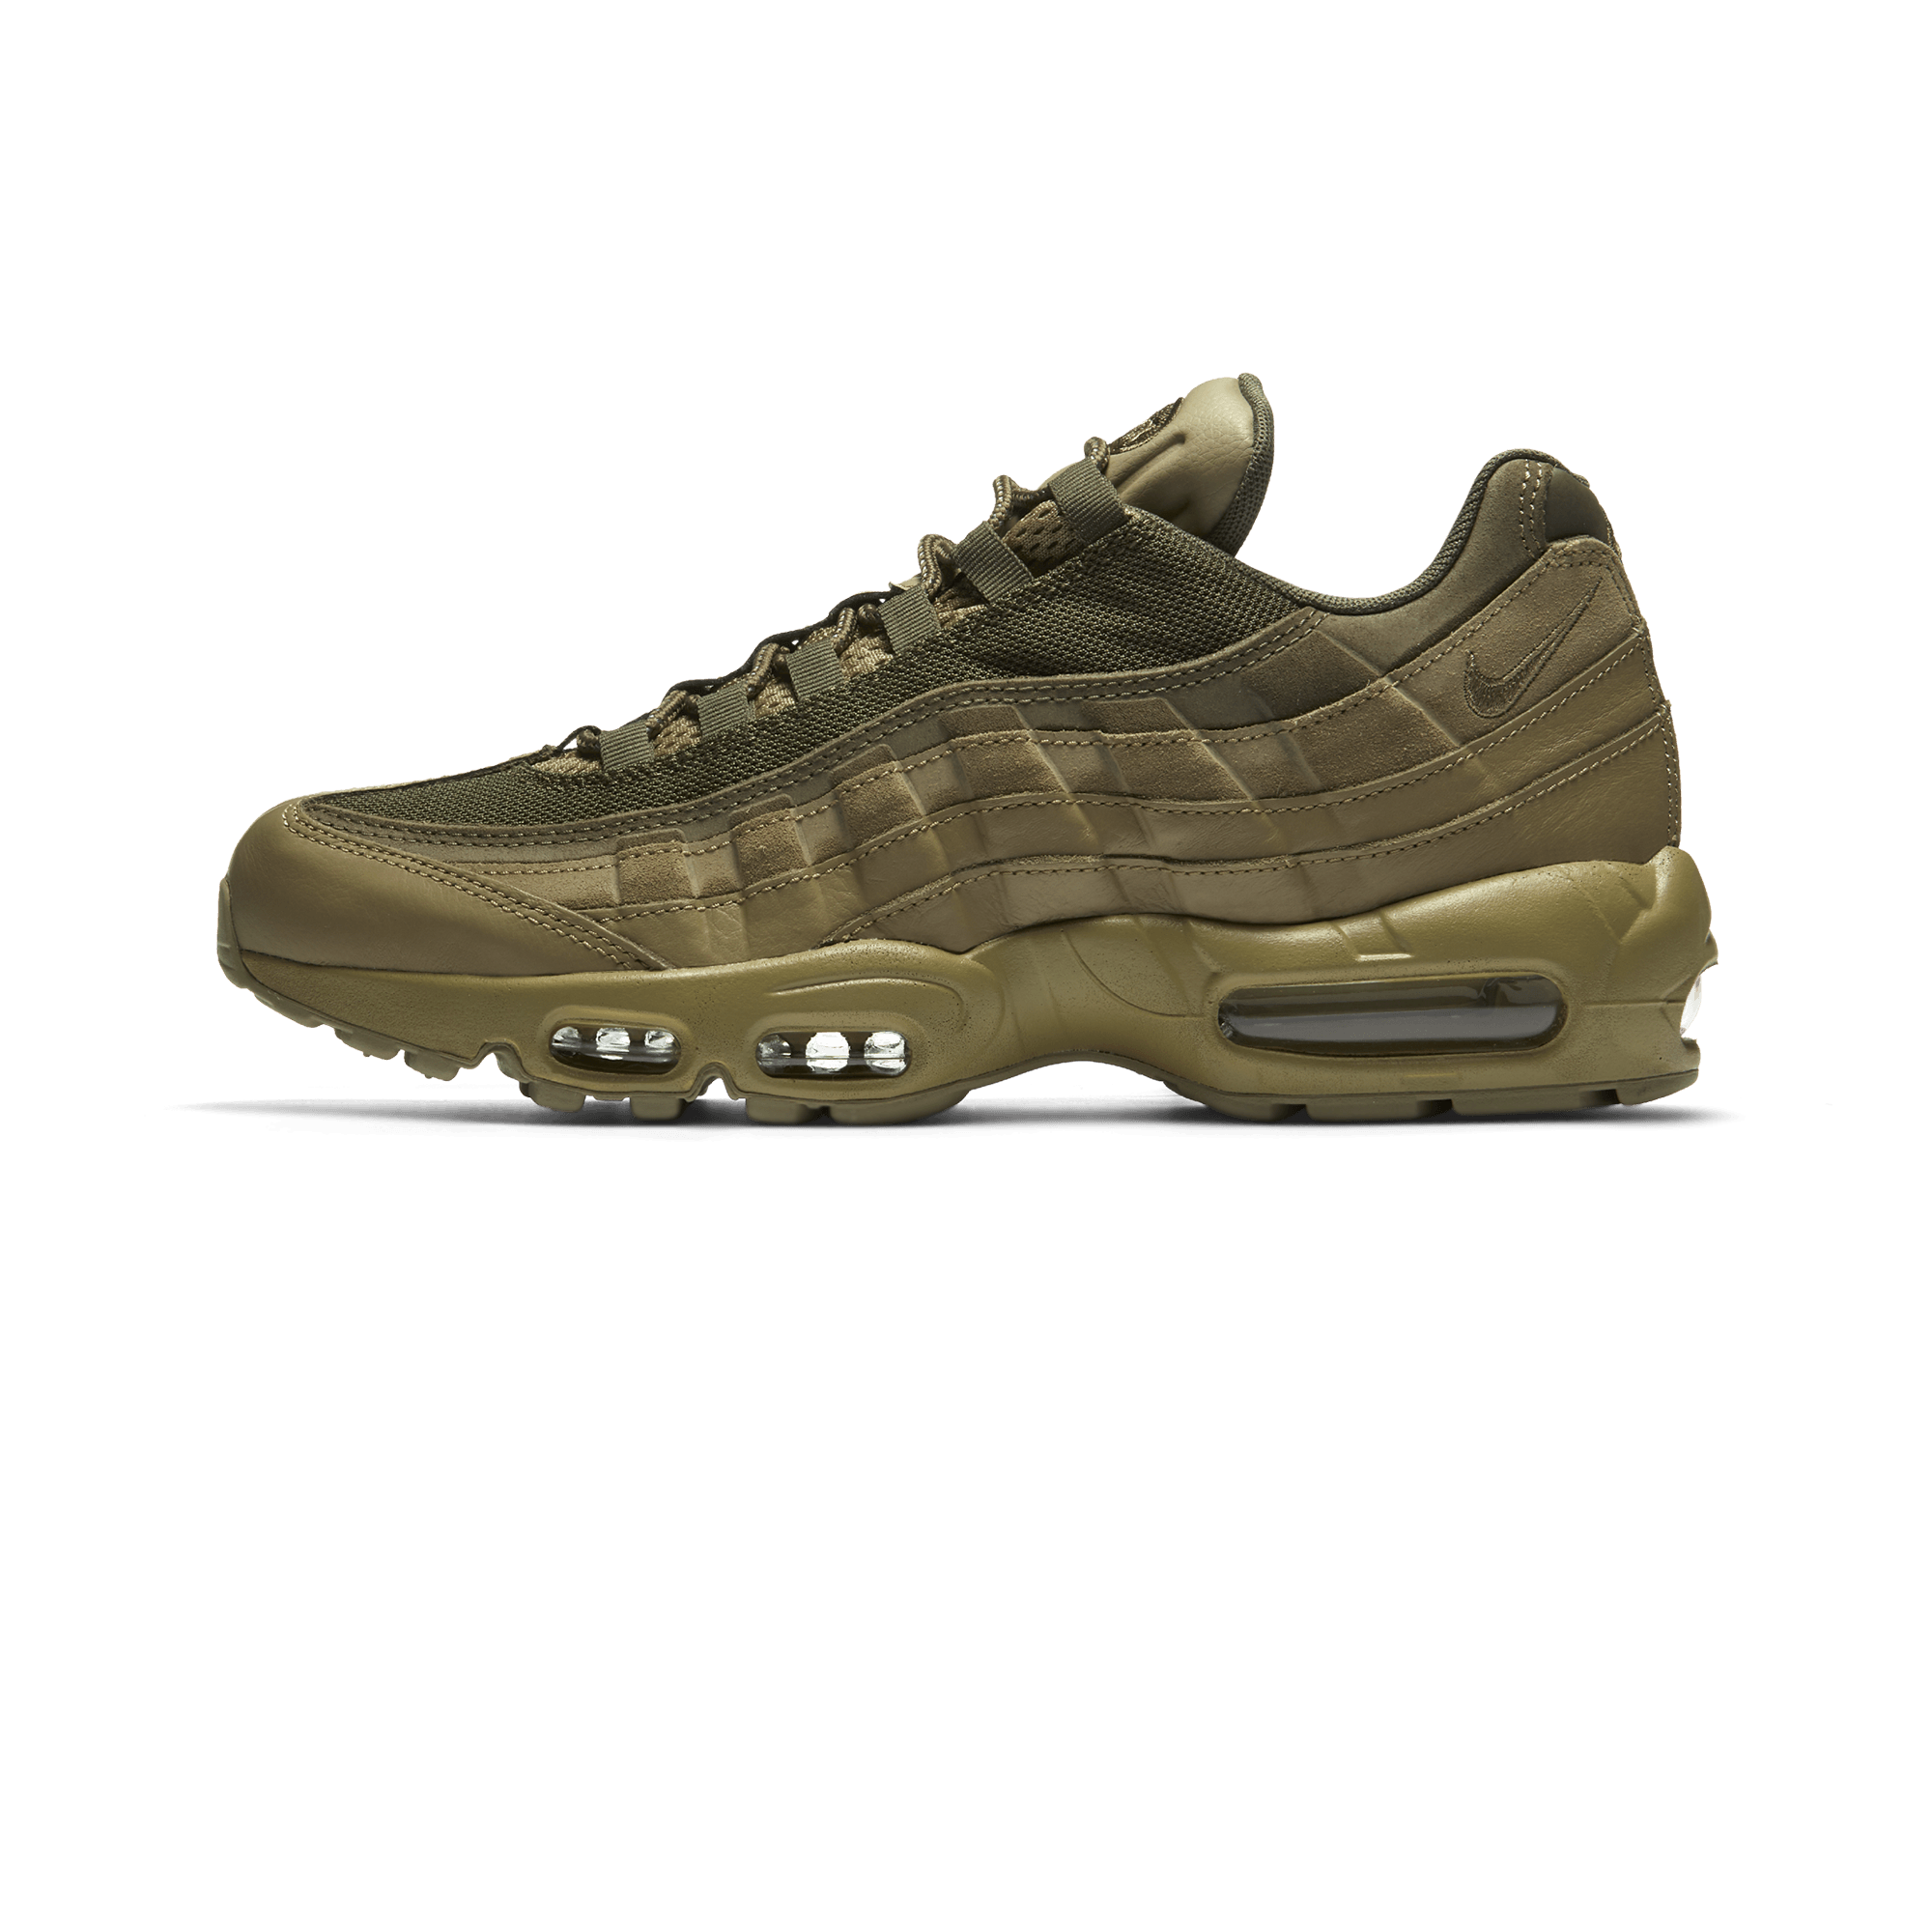 Air Max 95 Premium neutral olive / medium olive